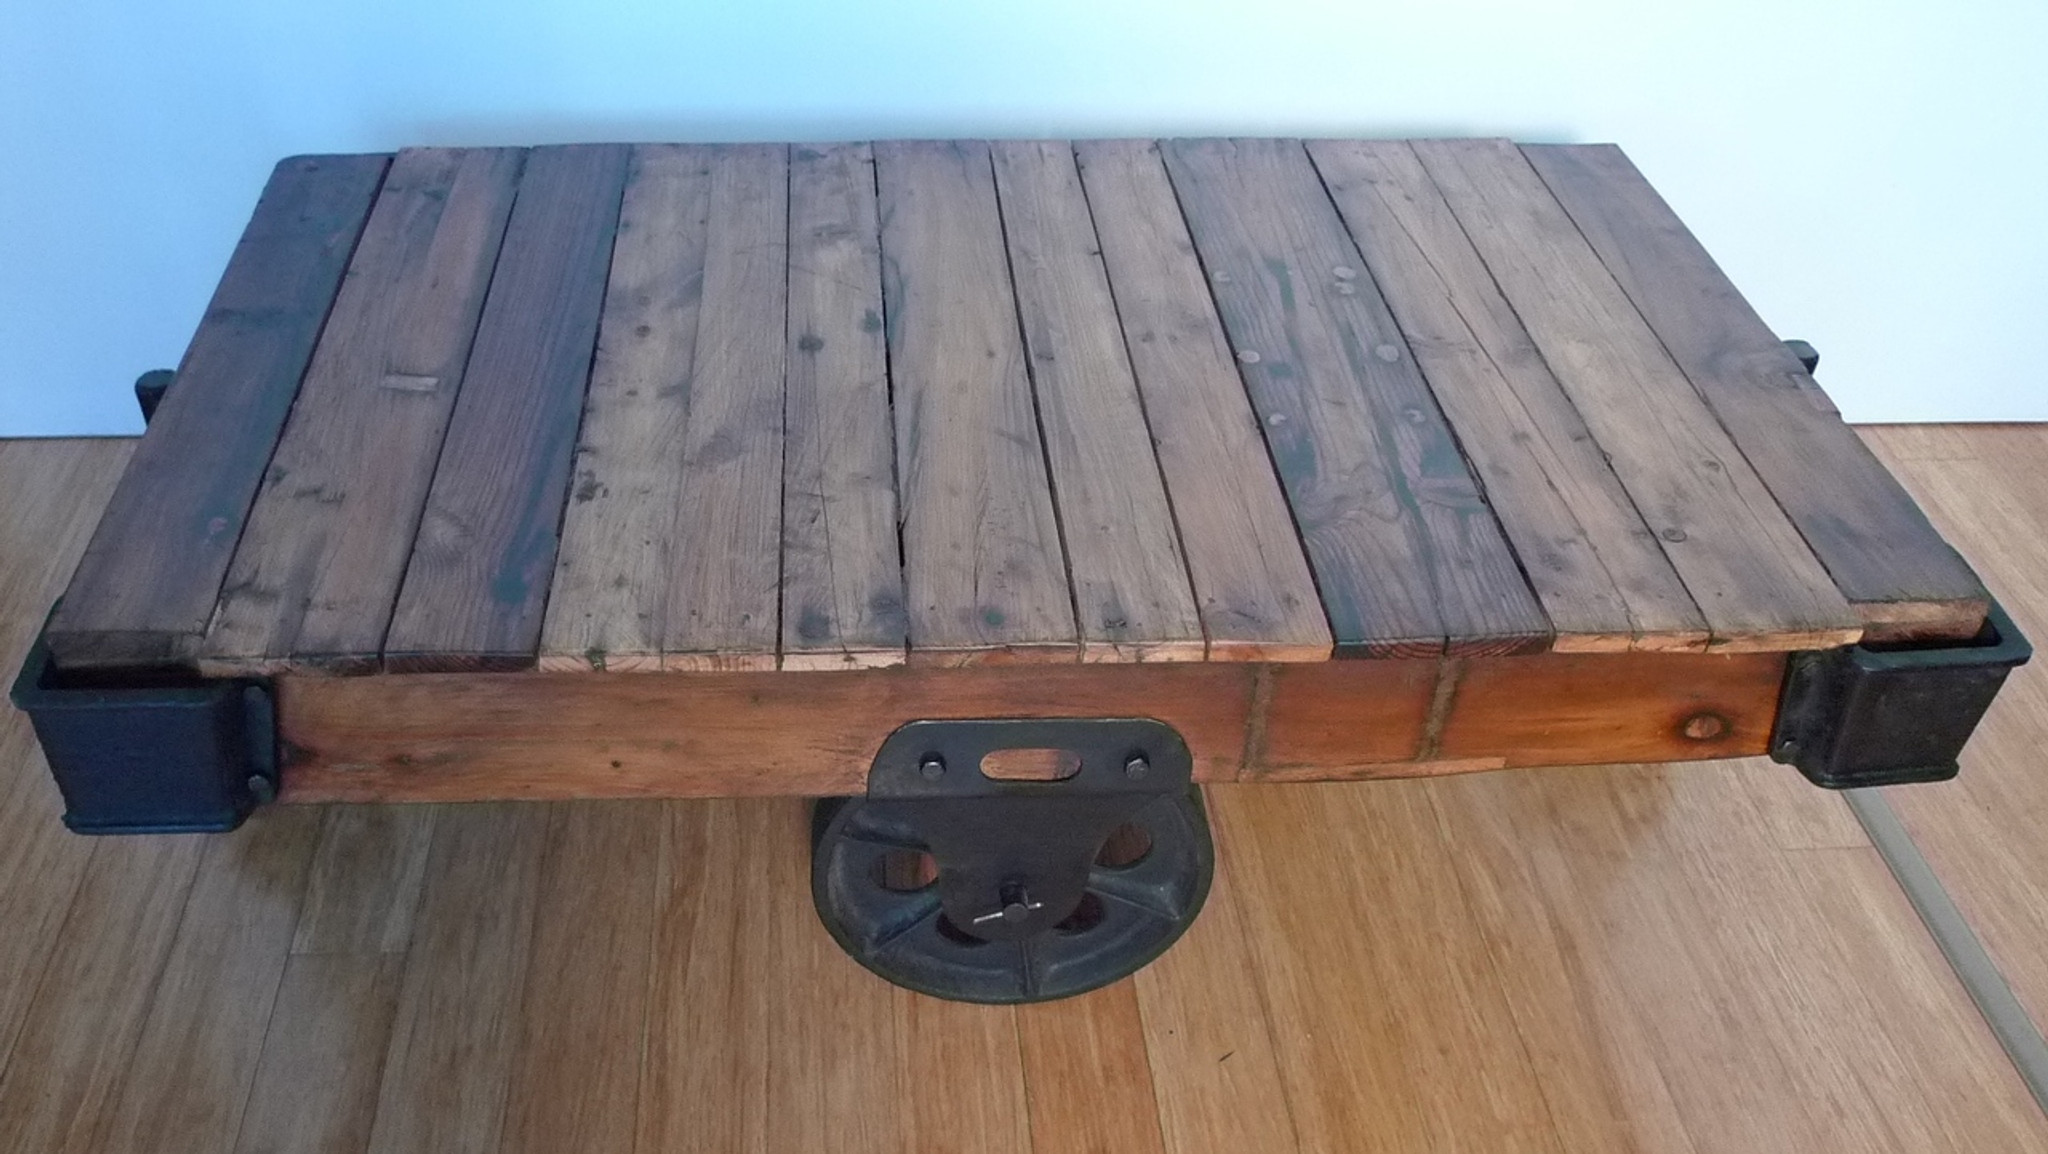 FANTASTIC INDUSTRIAL STYLE CAST IRON   TIMBER CART COFFEE TABLE. FANTASTIC VINTAGE BRISBANE INDUSTRIAL STYLE CAST IRON   TIMBER